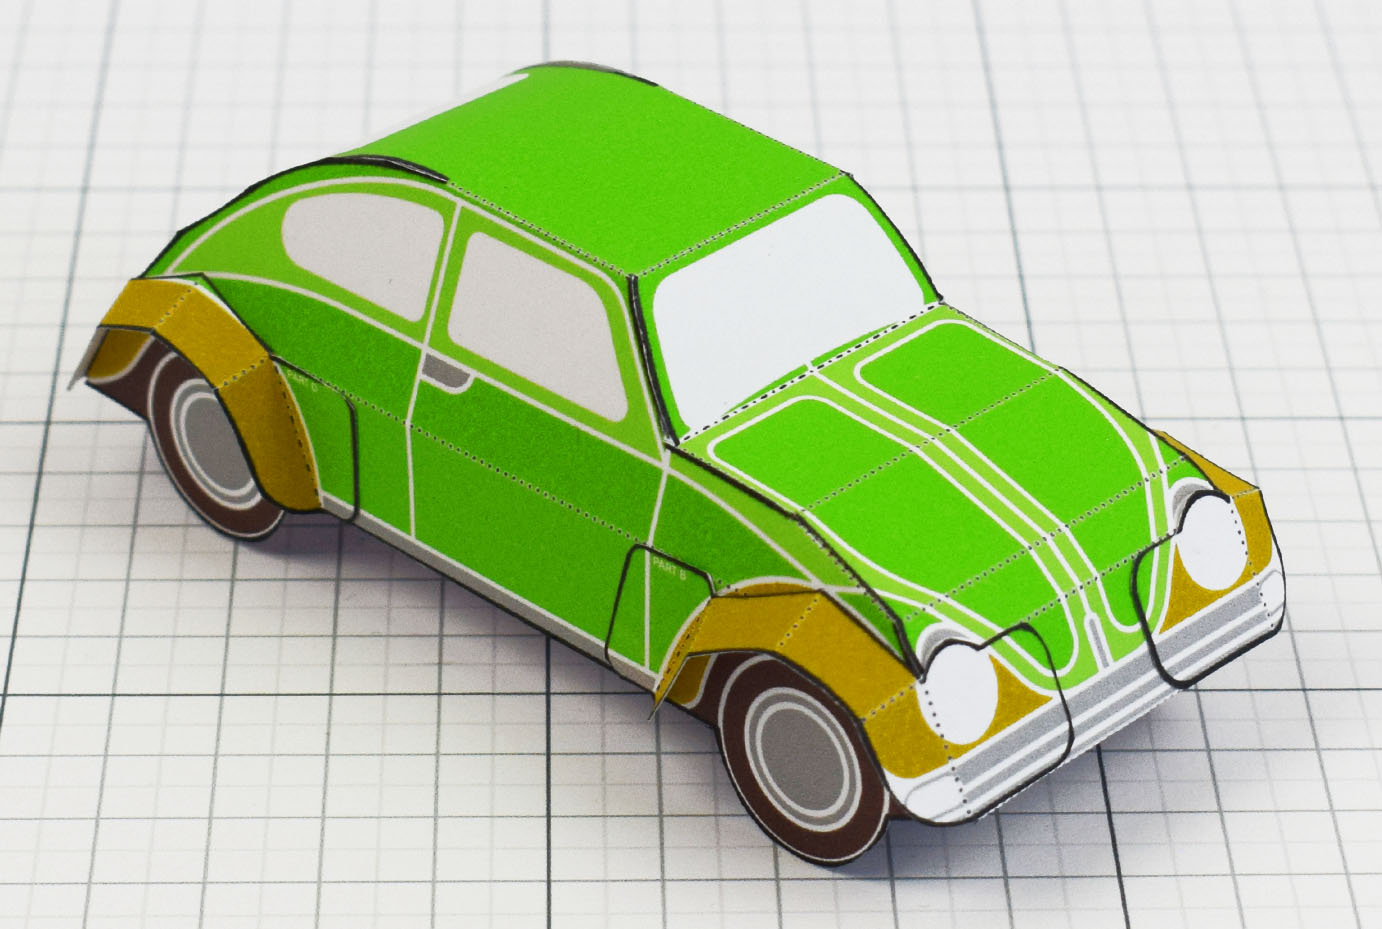 PTI - Enkl Twinkl Vintage Car paper toy craft model - Green Main